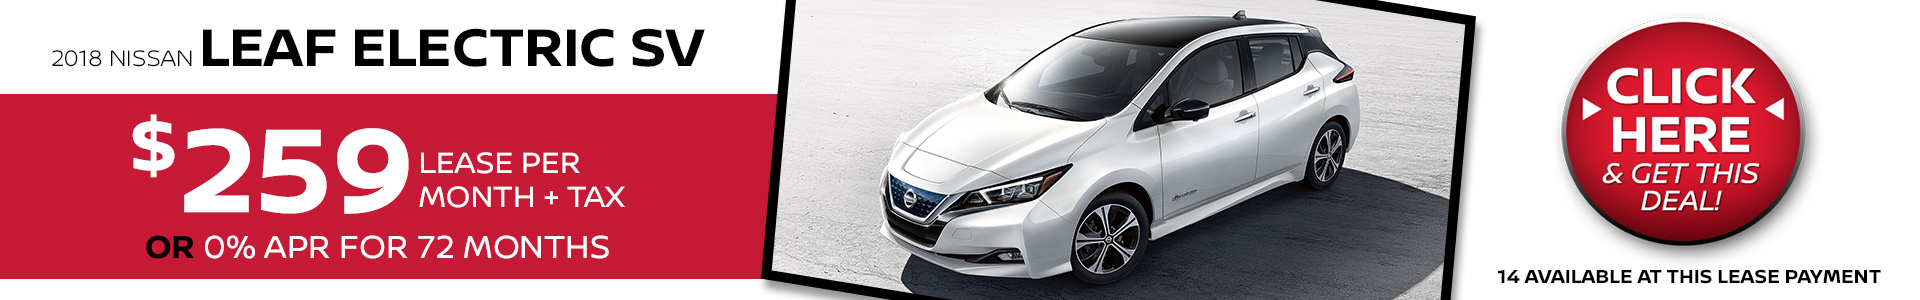 Nissan LEAF $259 Lease